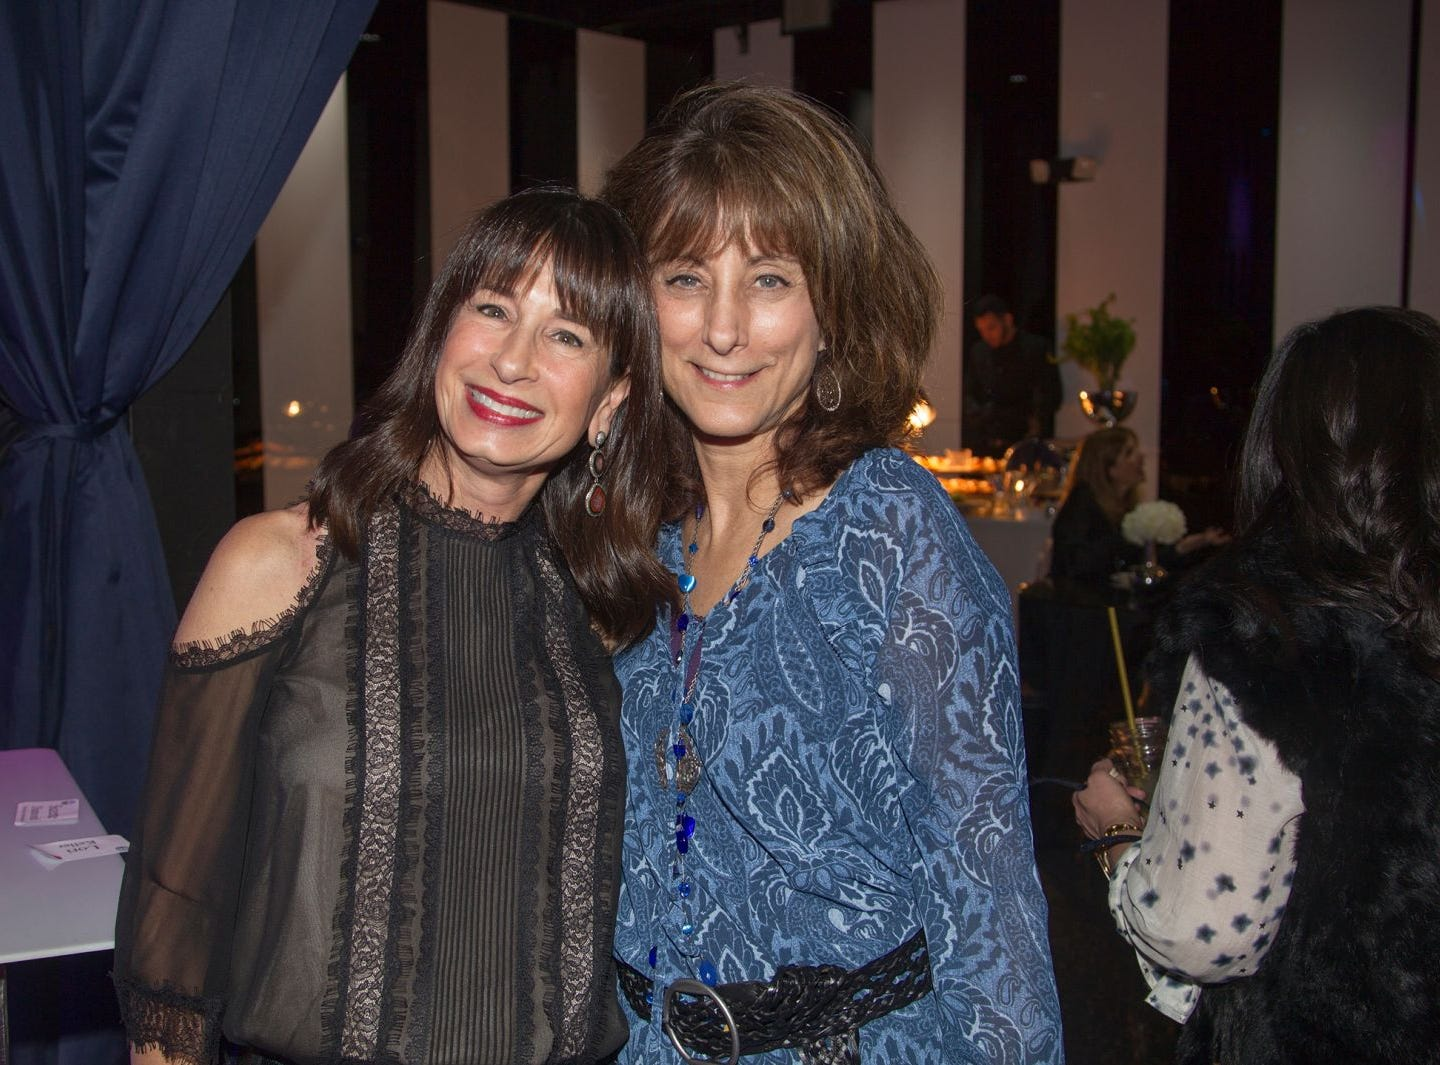 Suzette Diamond, Lori Keller. Jewish Federation of Northern New Jersey held its first Girl's Night Out dance party at Space in Englewood. 01/24/2019